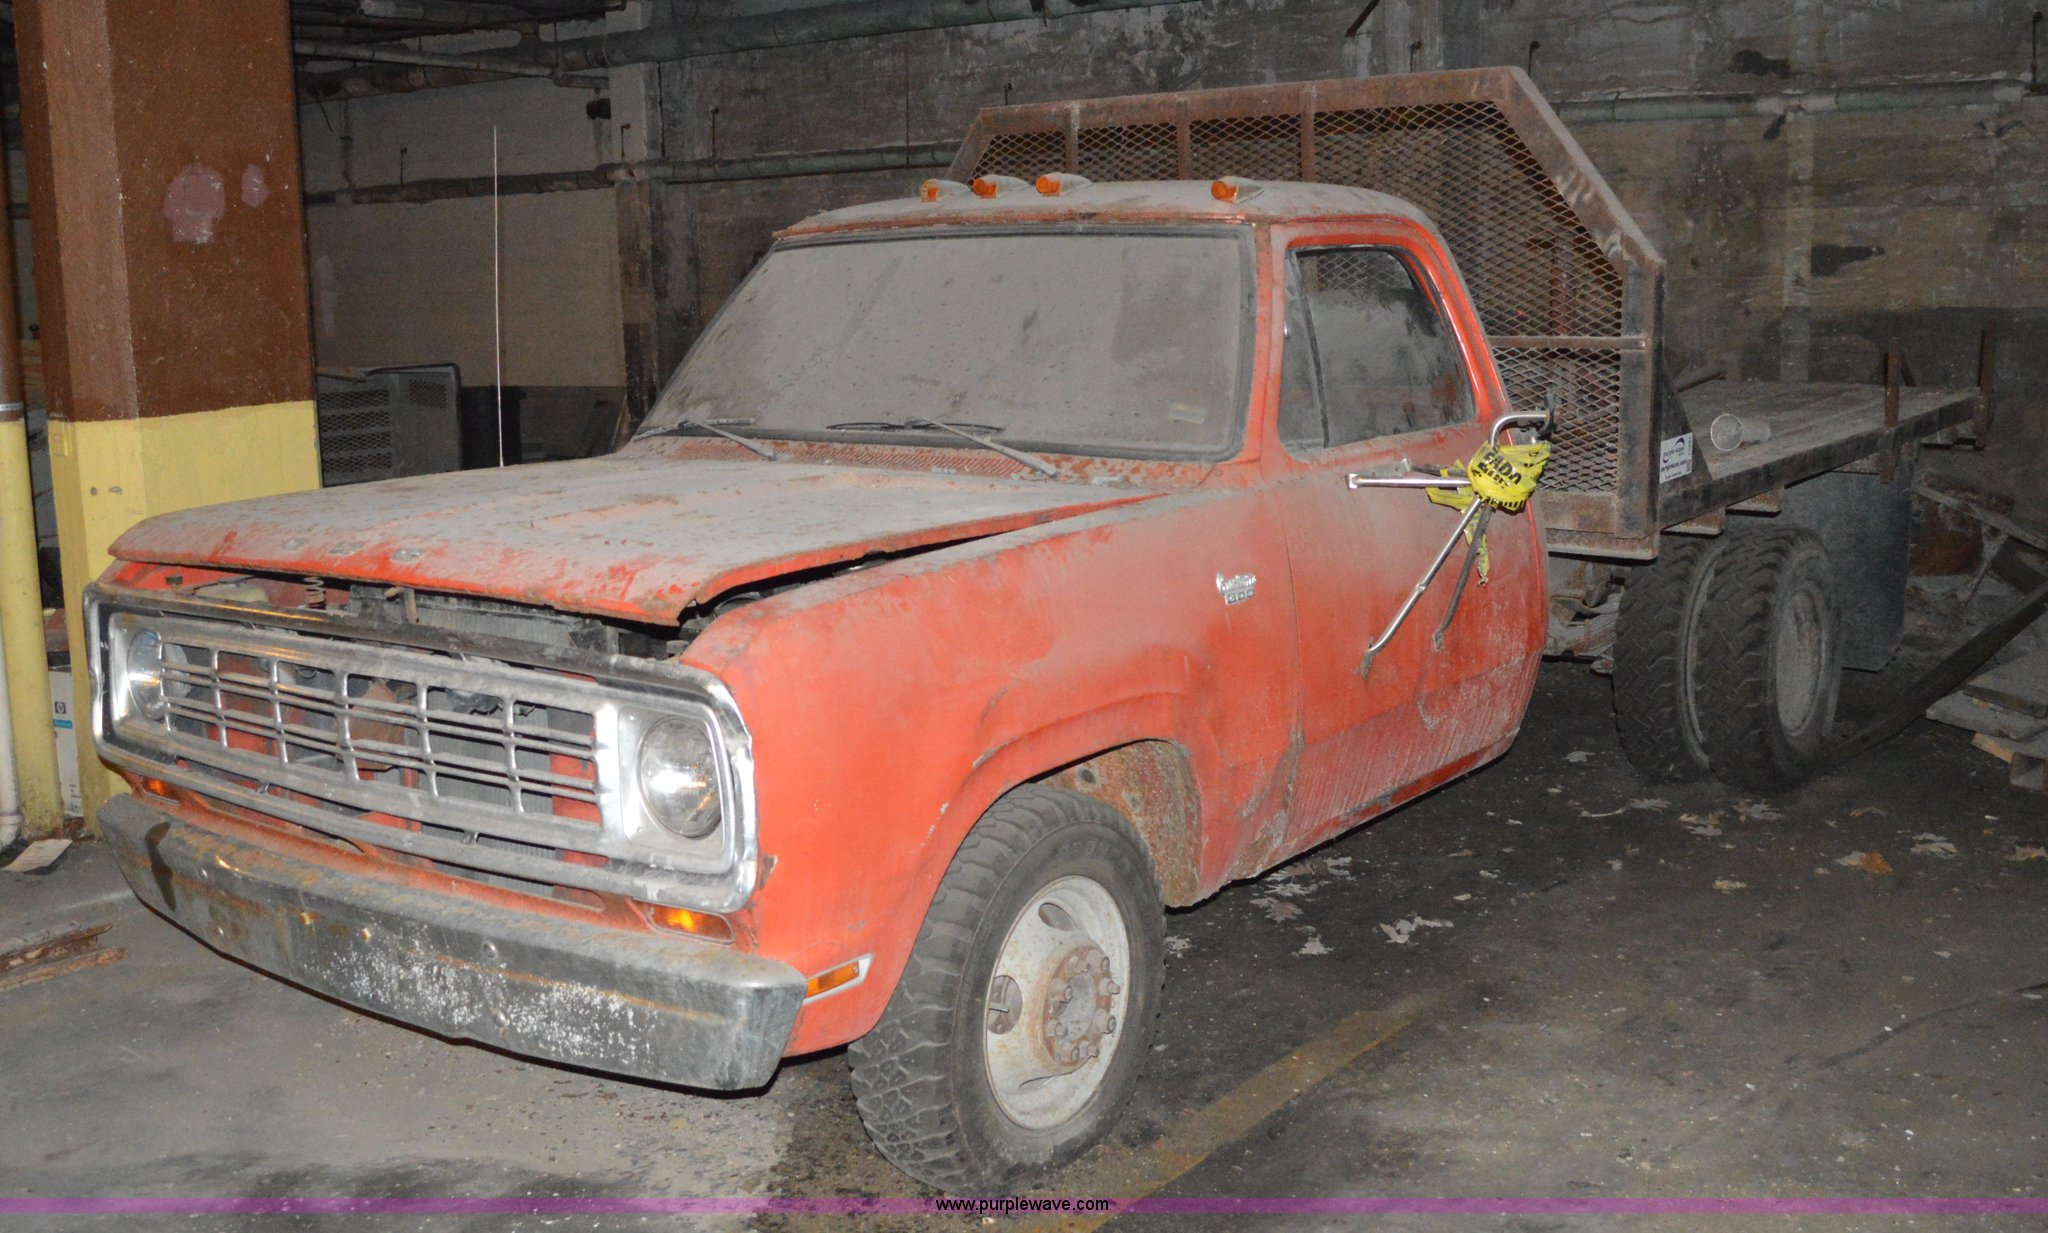 1974 Dodge Ram D30 flatbed pickup truck | Item I2854 | SOLD!